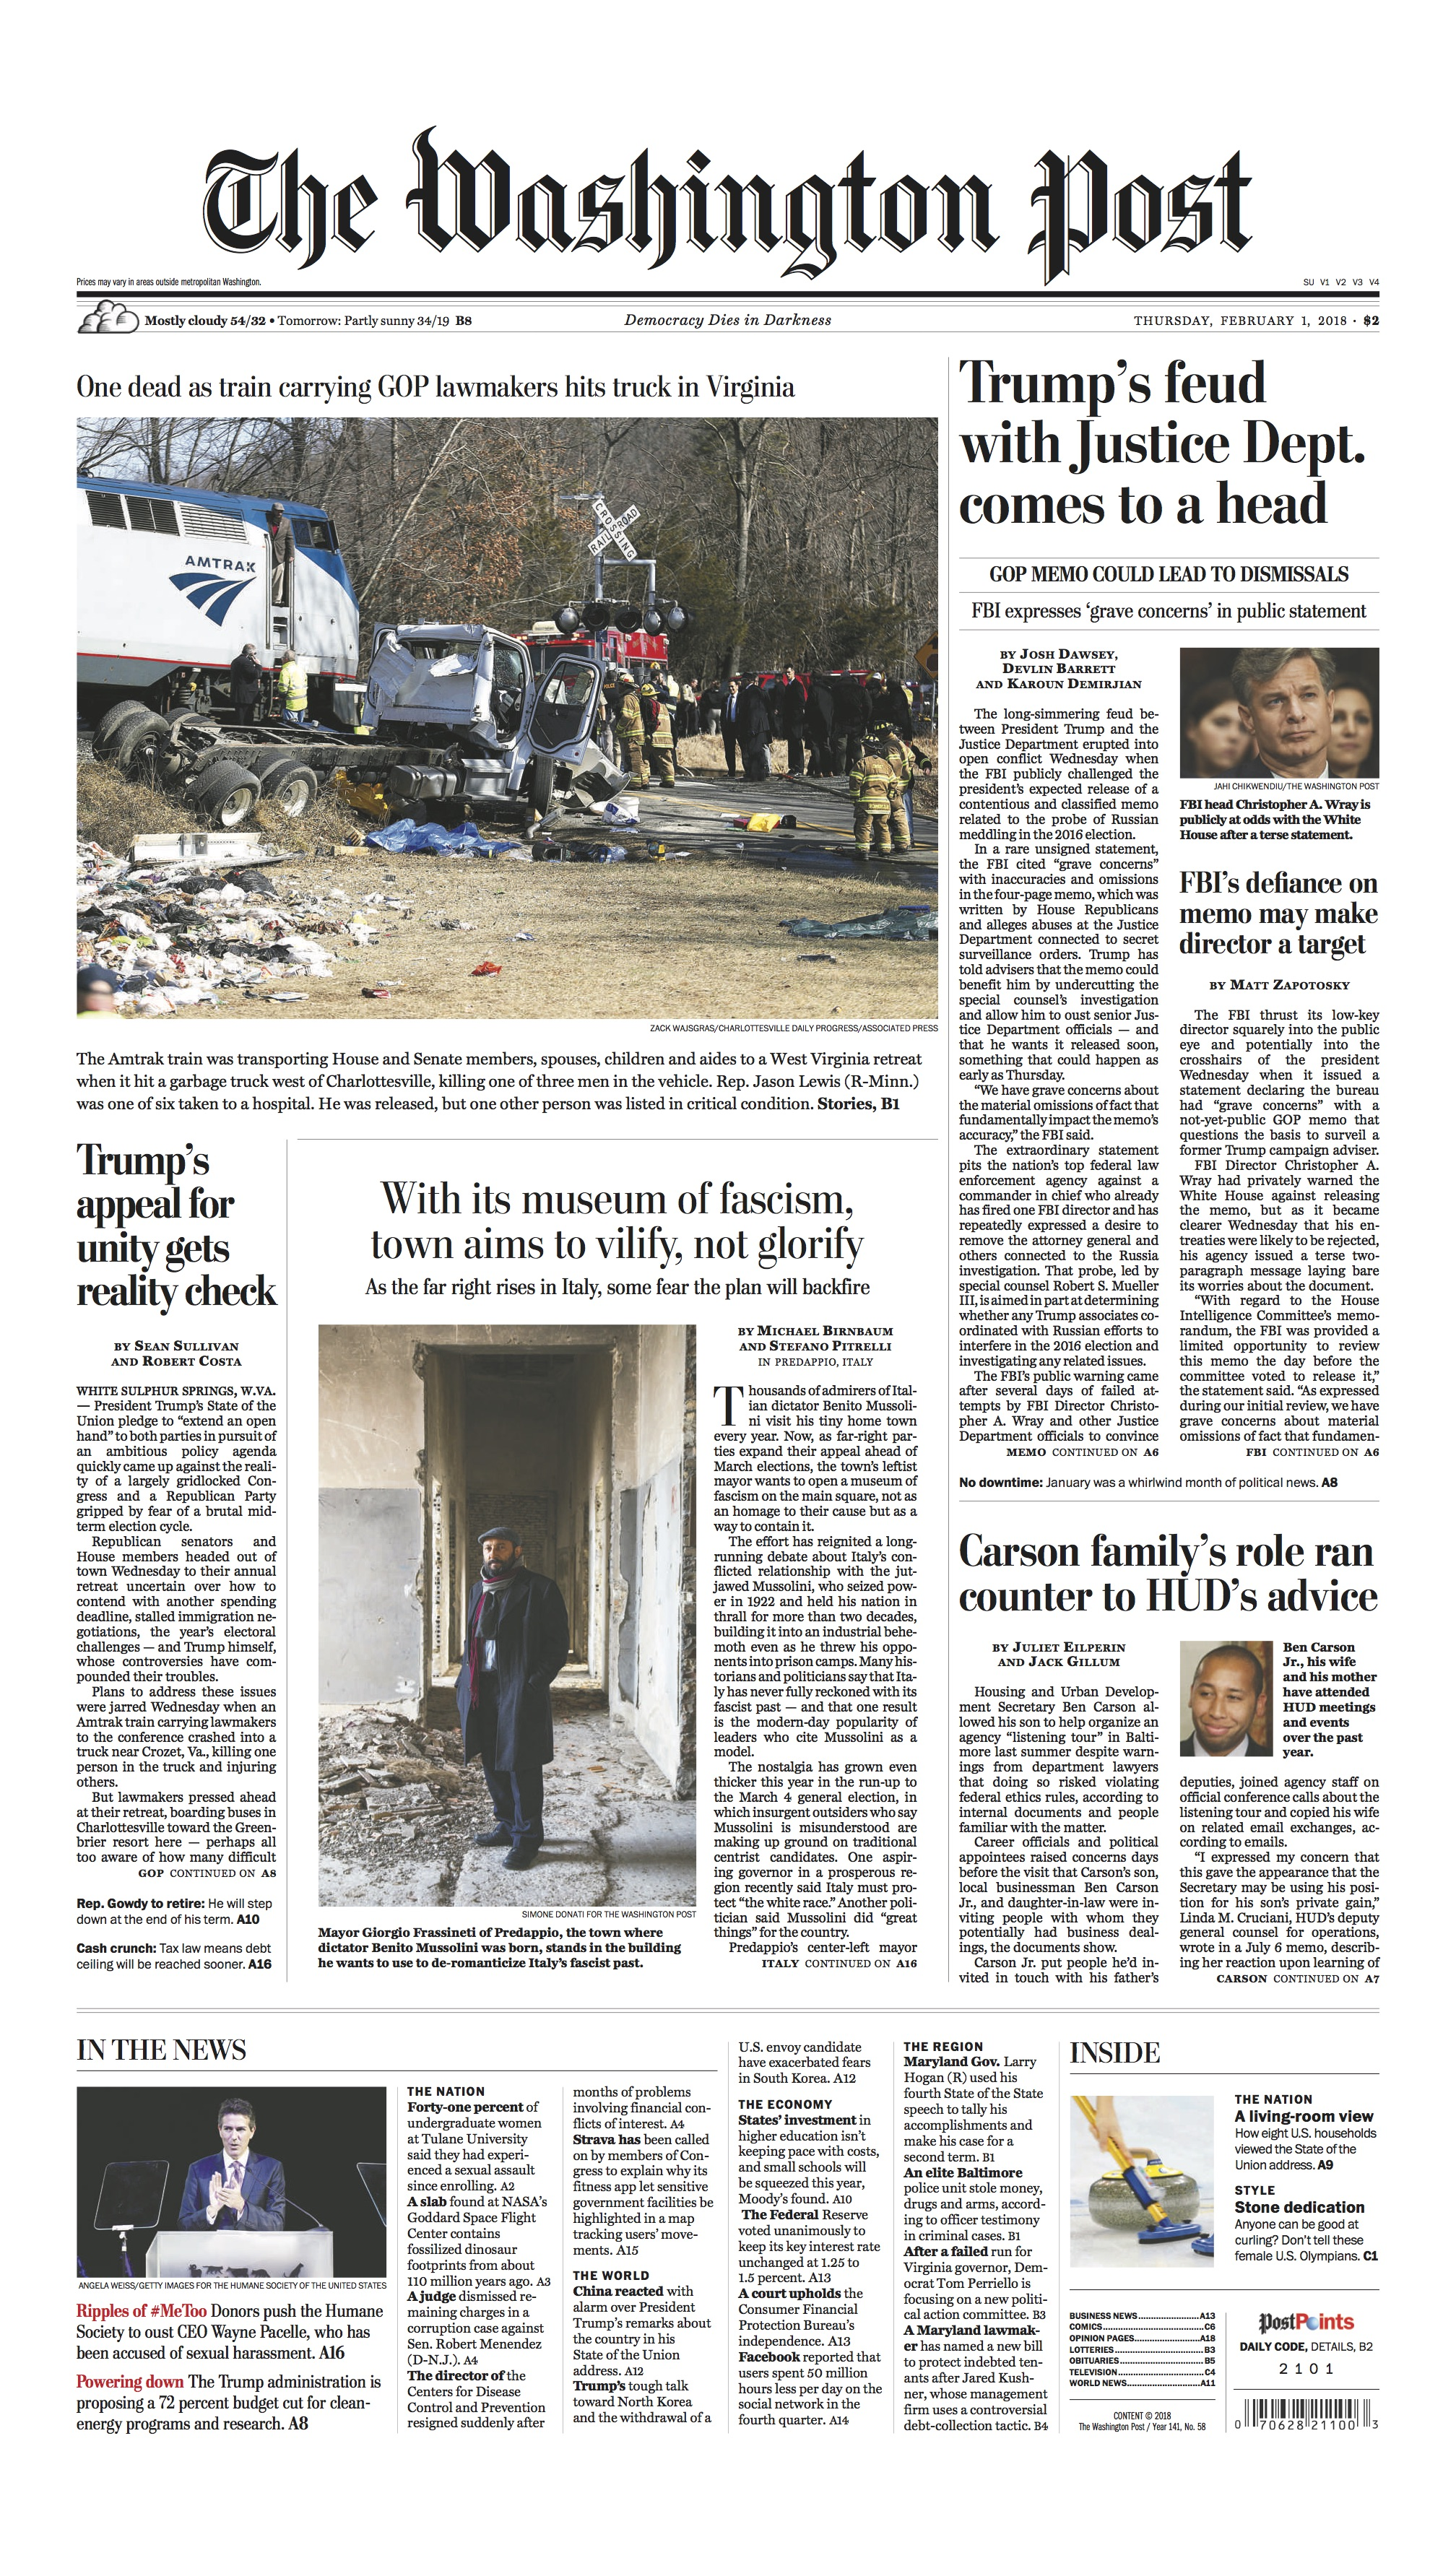 TWP FRONT PAGE - Frassineti